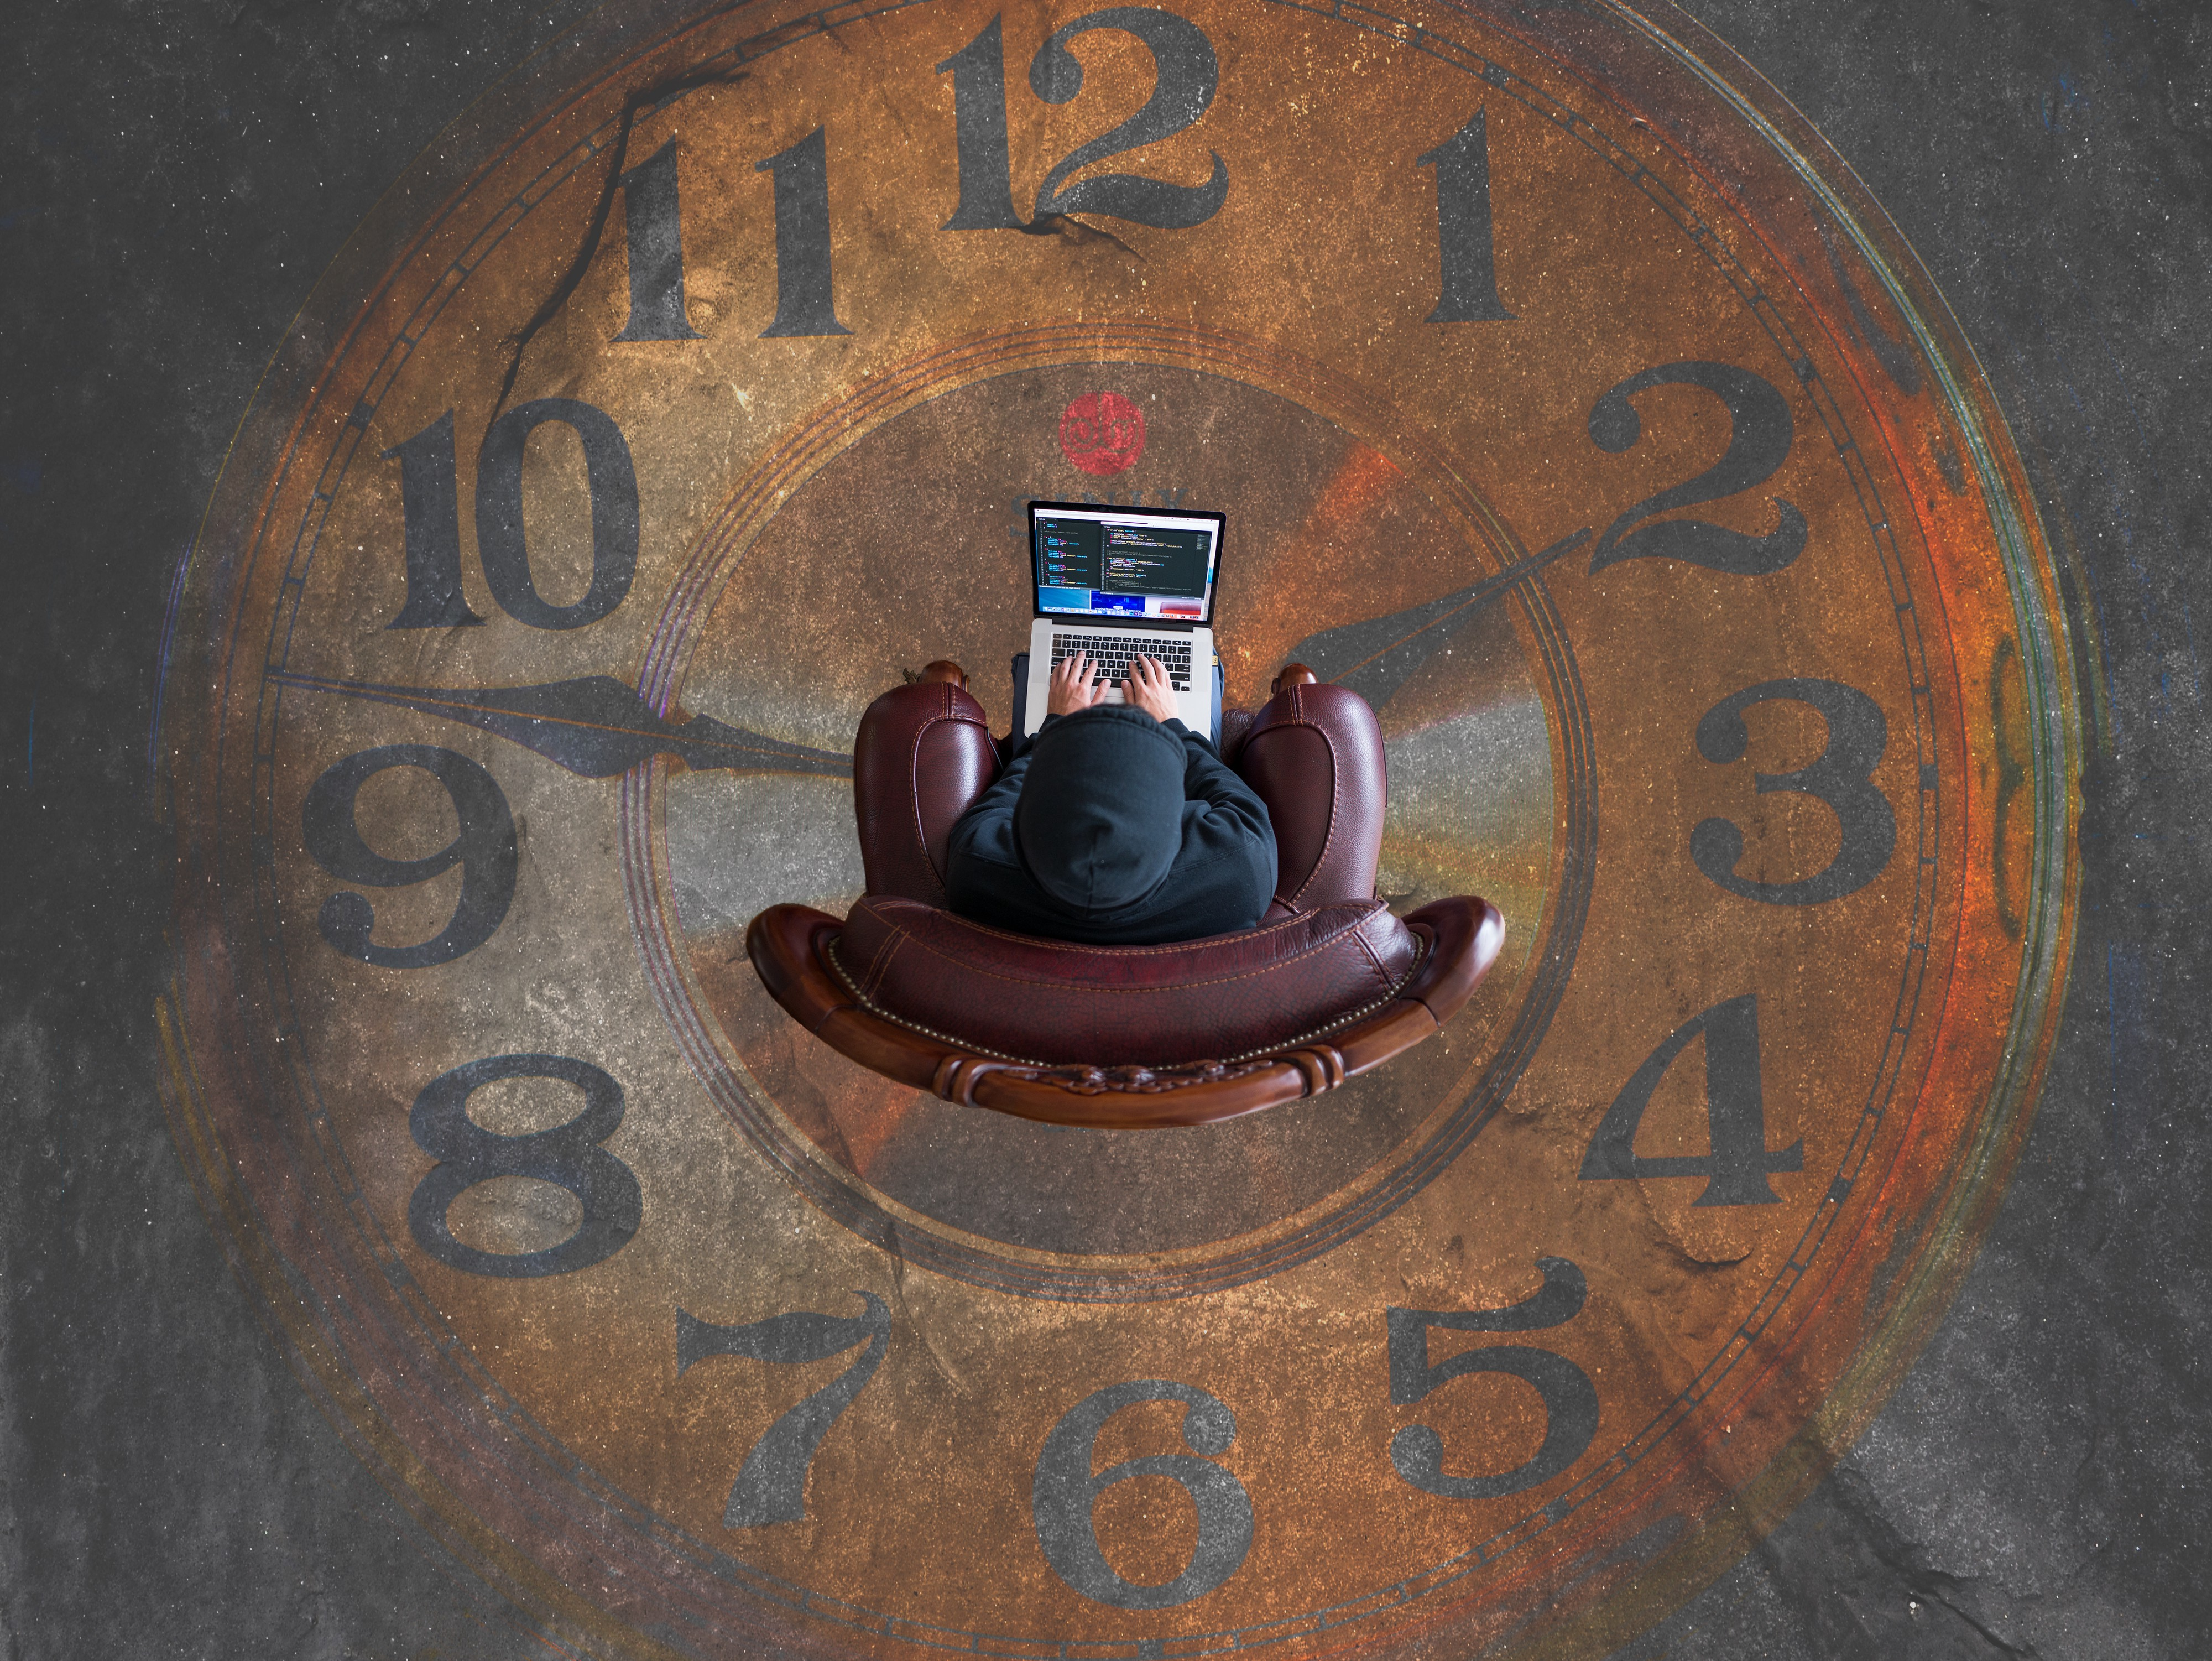 A Person Sitting with Their Laptop on Chair Surrounded by a Huge Clock in the Background as a floor